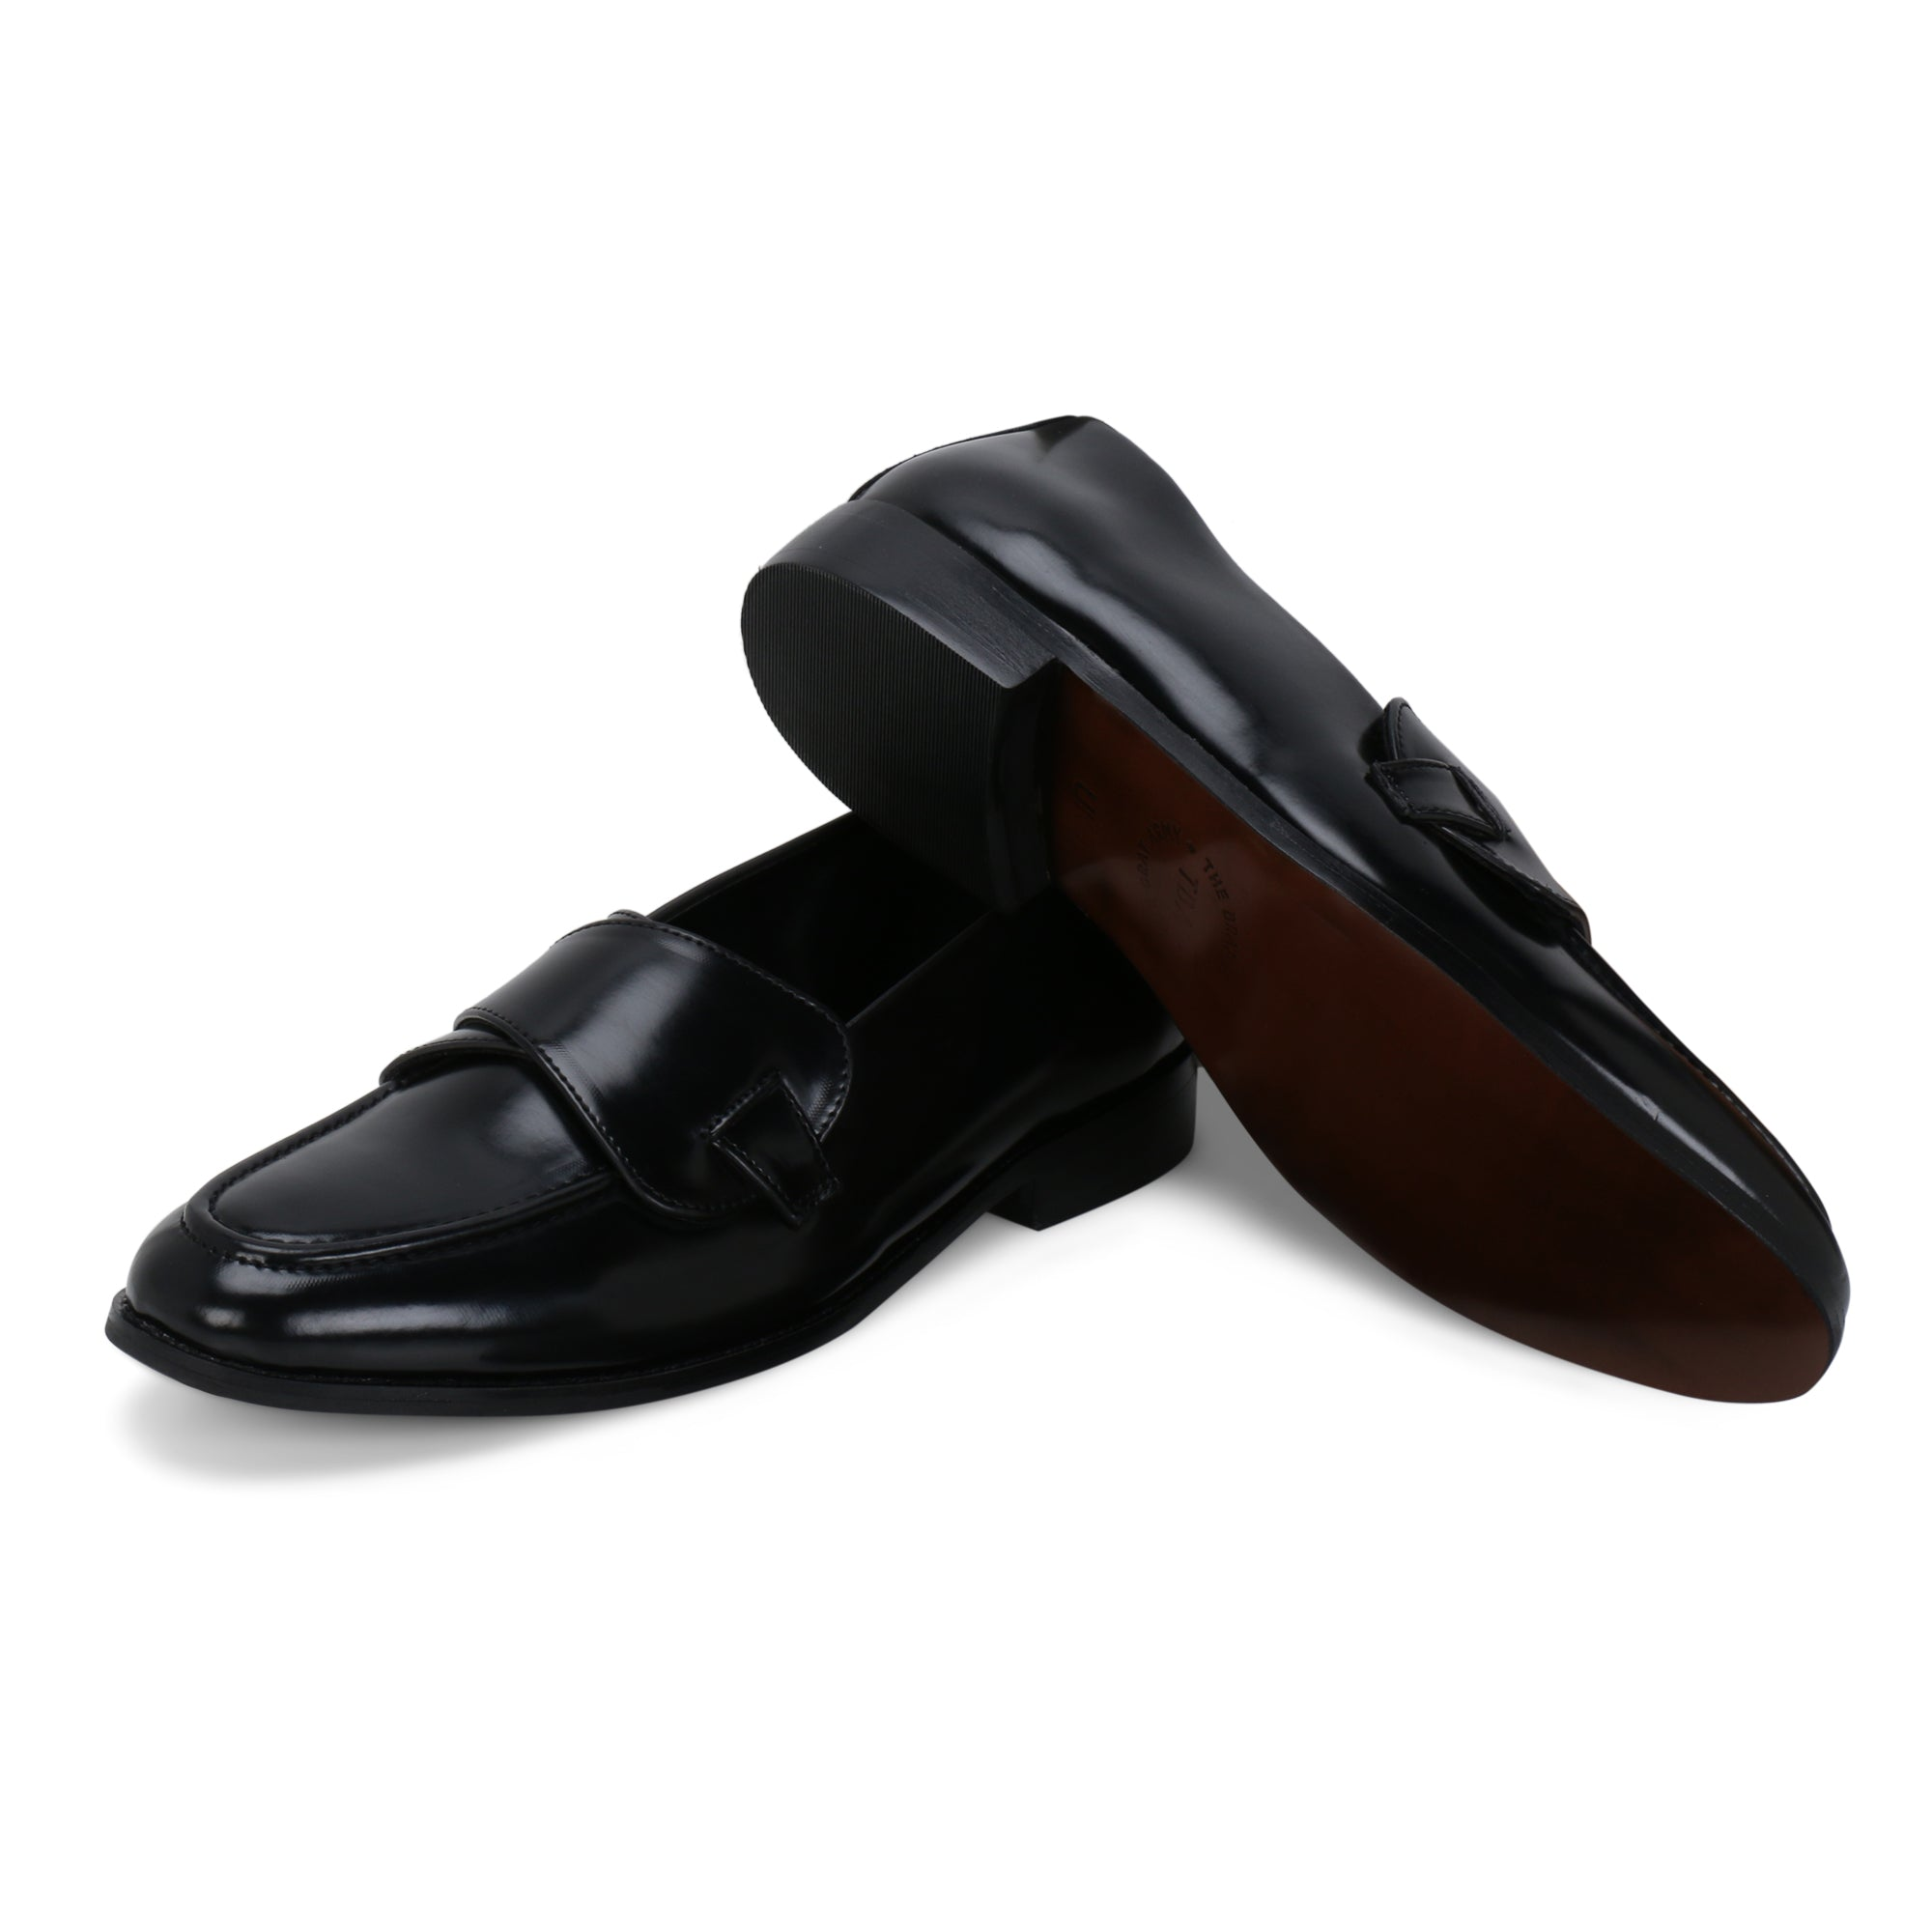 COLUMBUS BLACK BUTTERFLY LOAFER